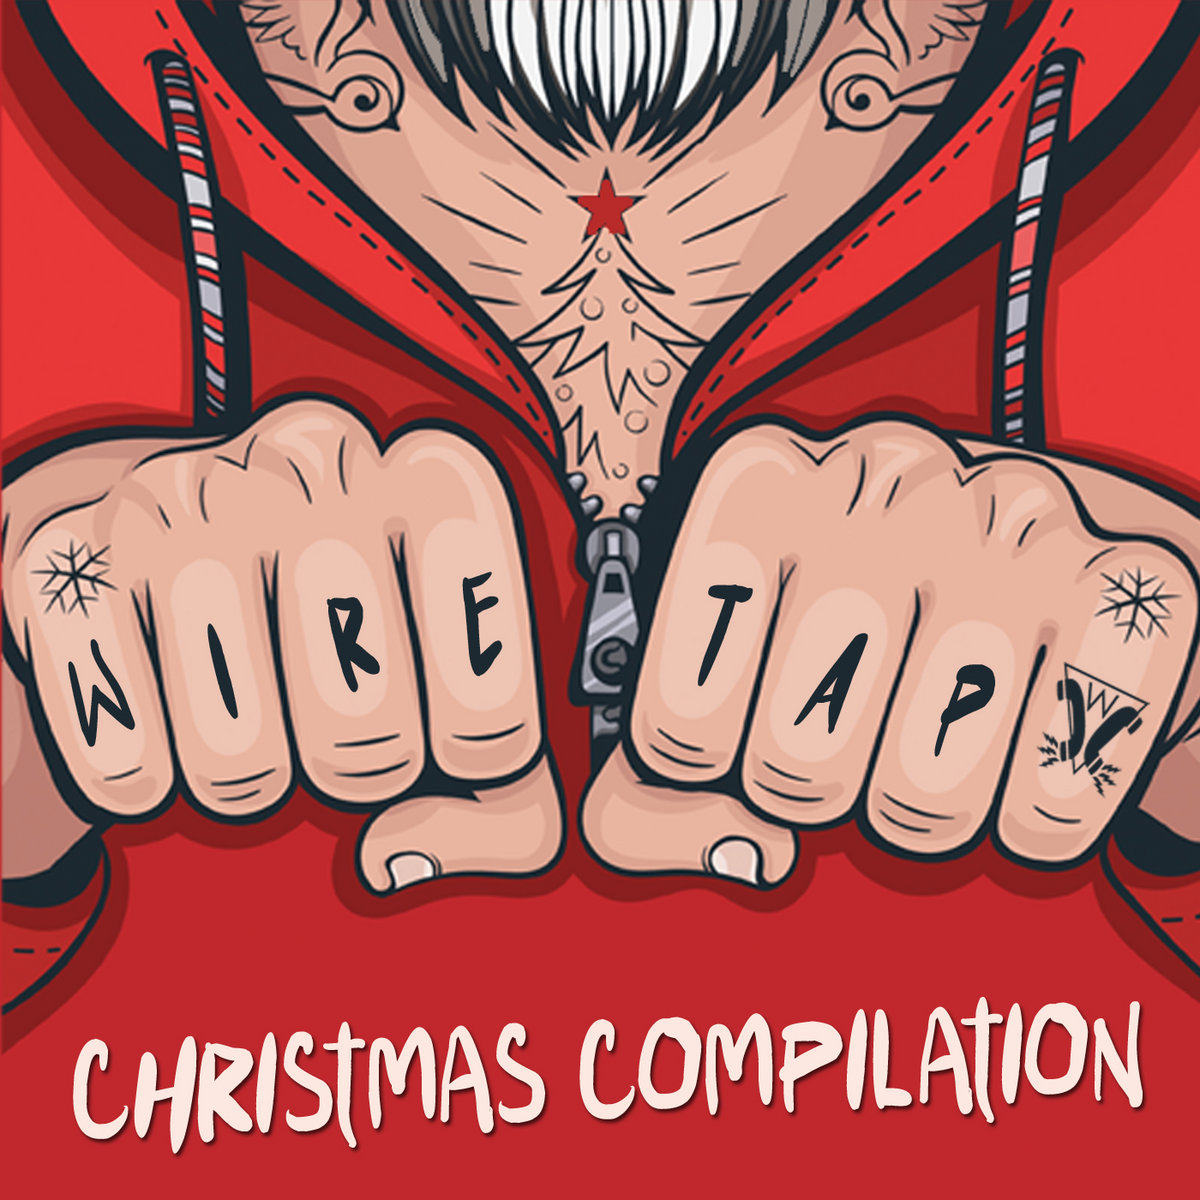 The Christmas Song (Weezer Cover) | Wiretap Records